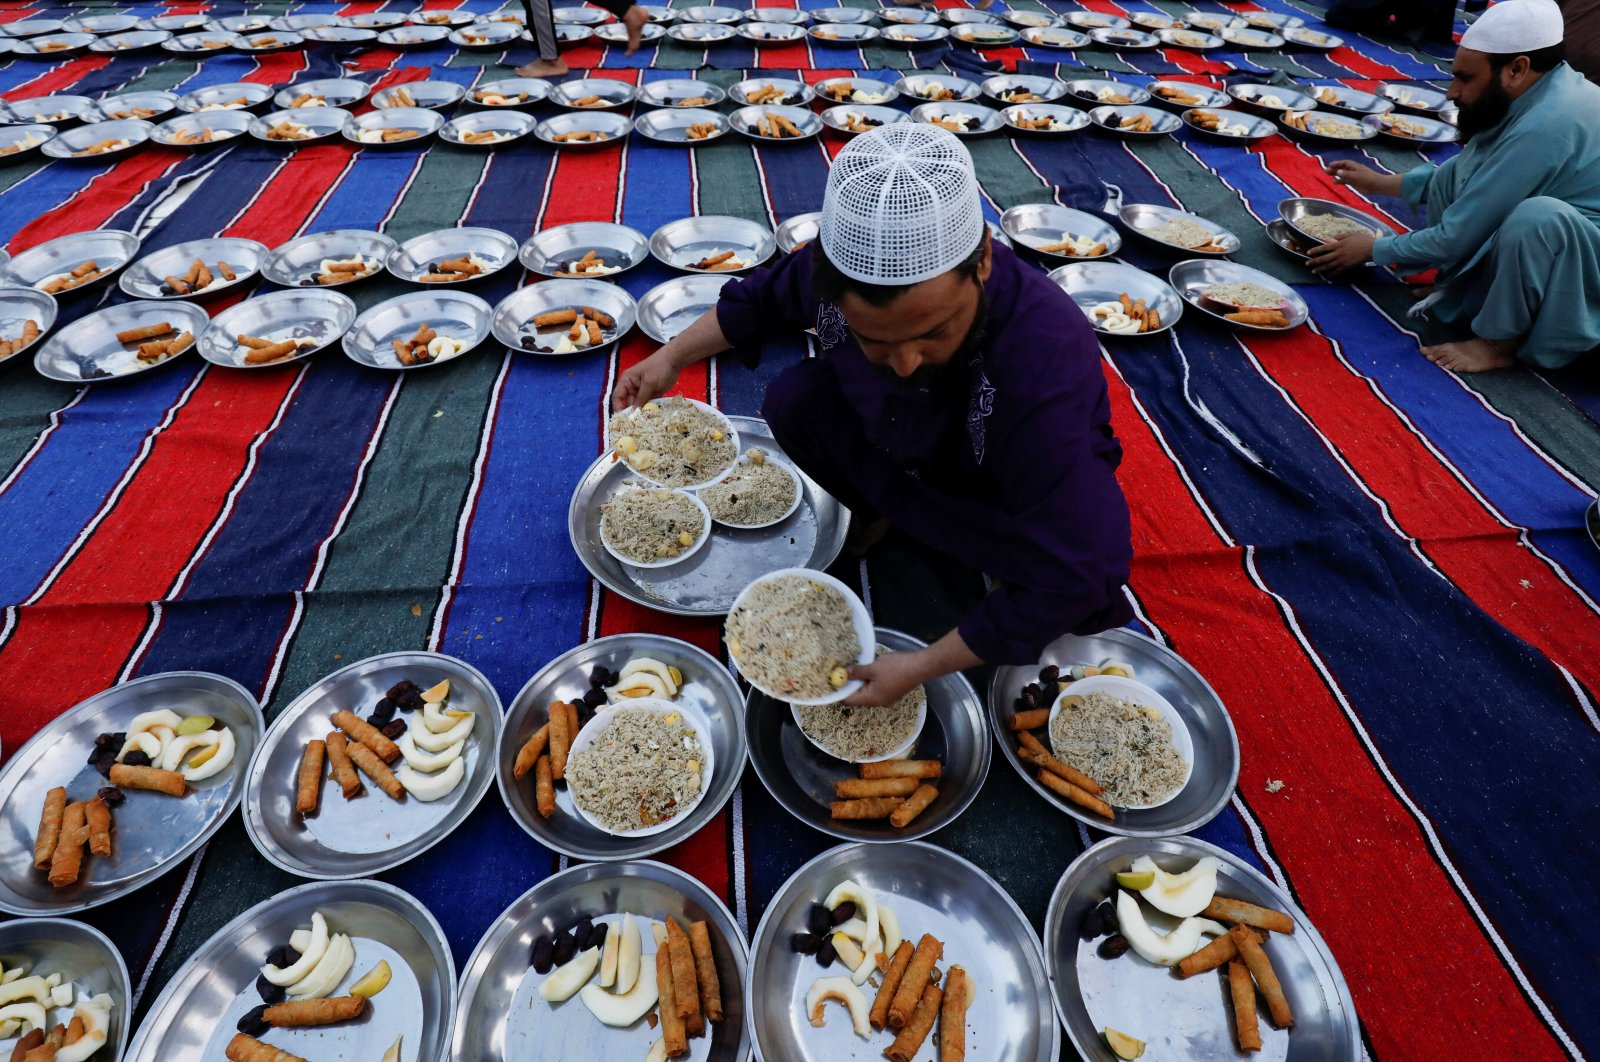 A man arranges plates of food for iftar during the fasting month of Ramadan, as the COVID-19 outbreak continues, at a mosque in Karachi, Pakistan, April 14, 2021. (Reuters Photo)